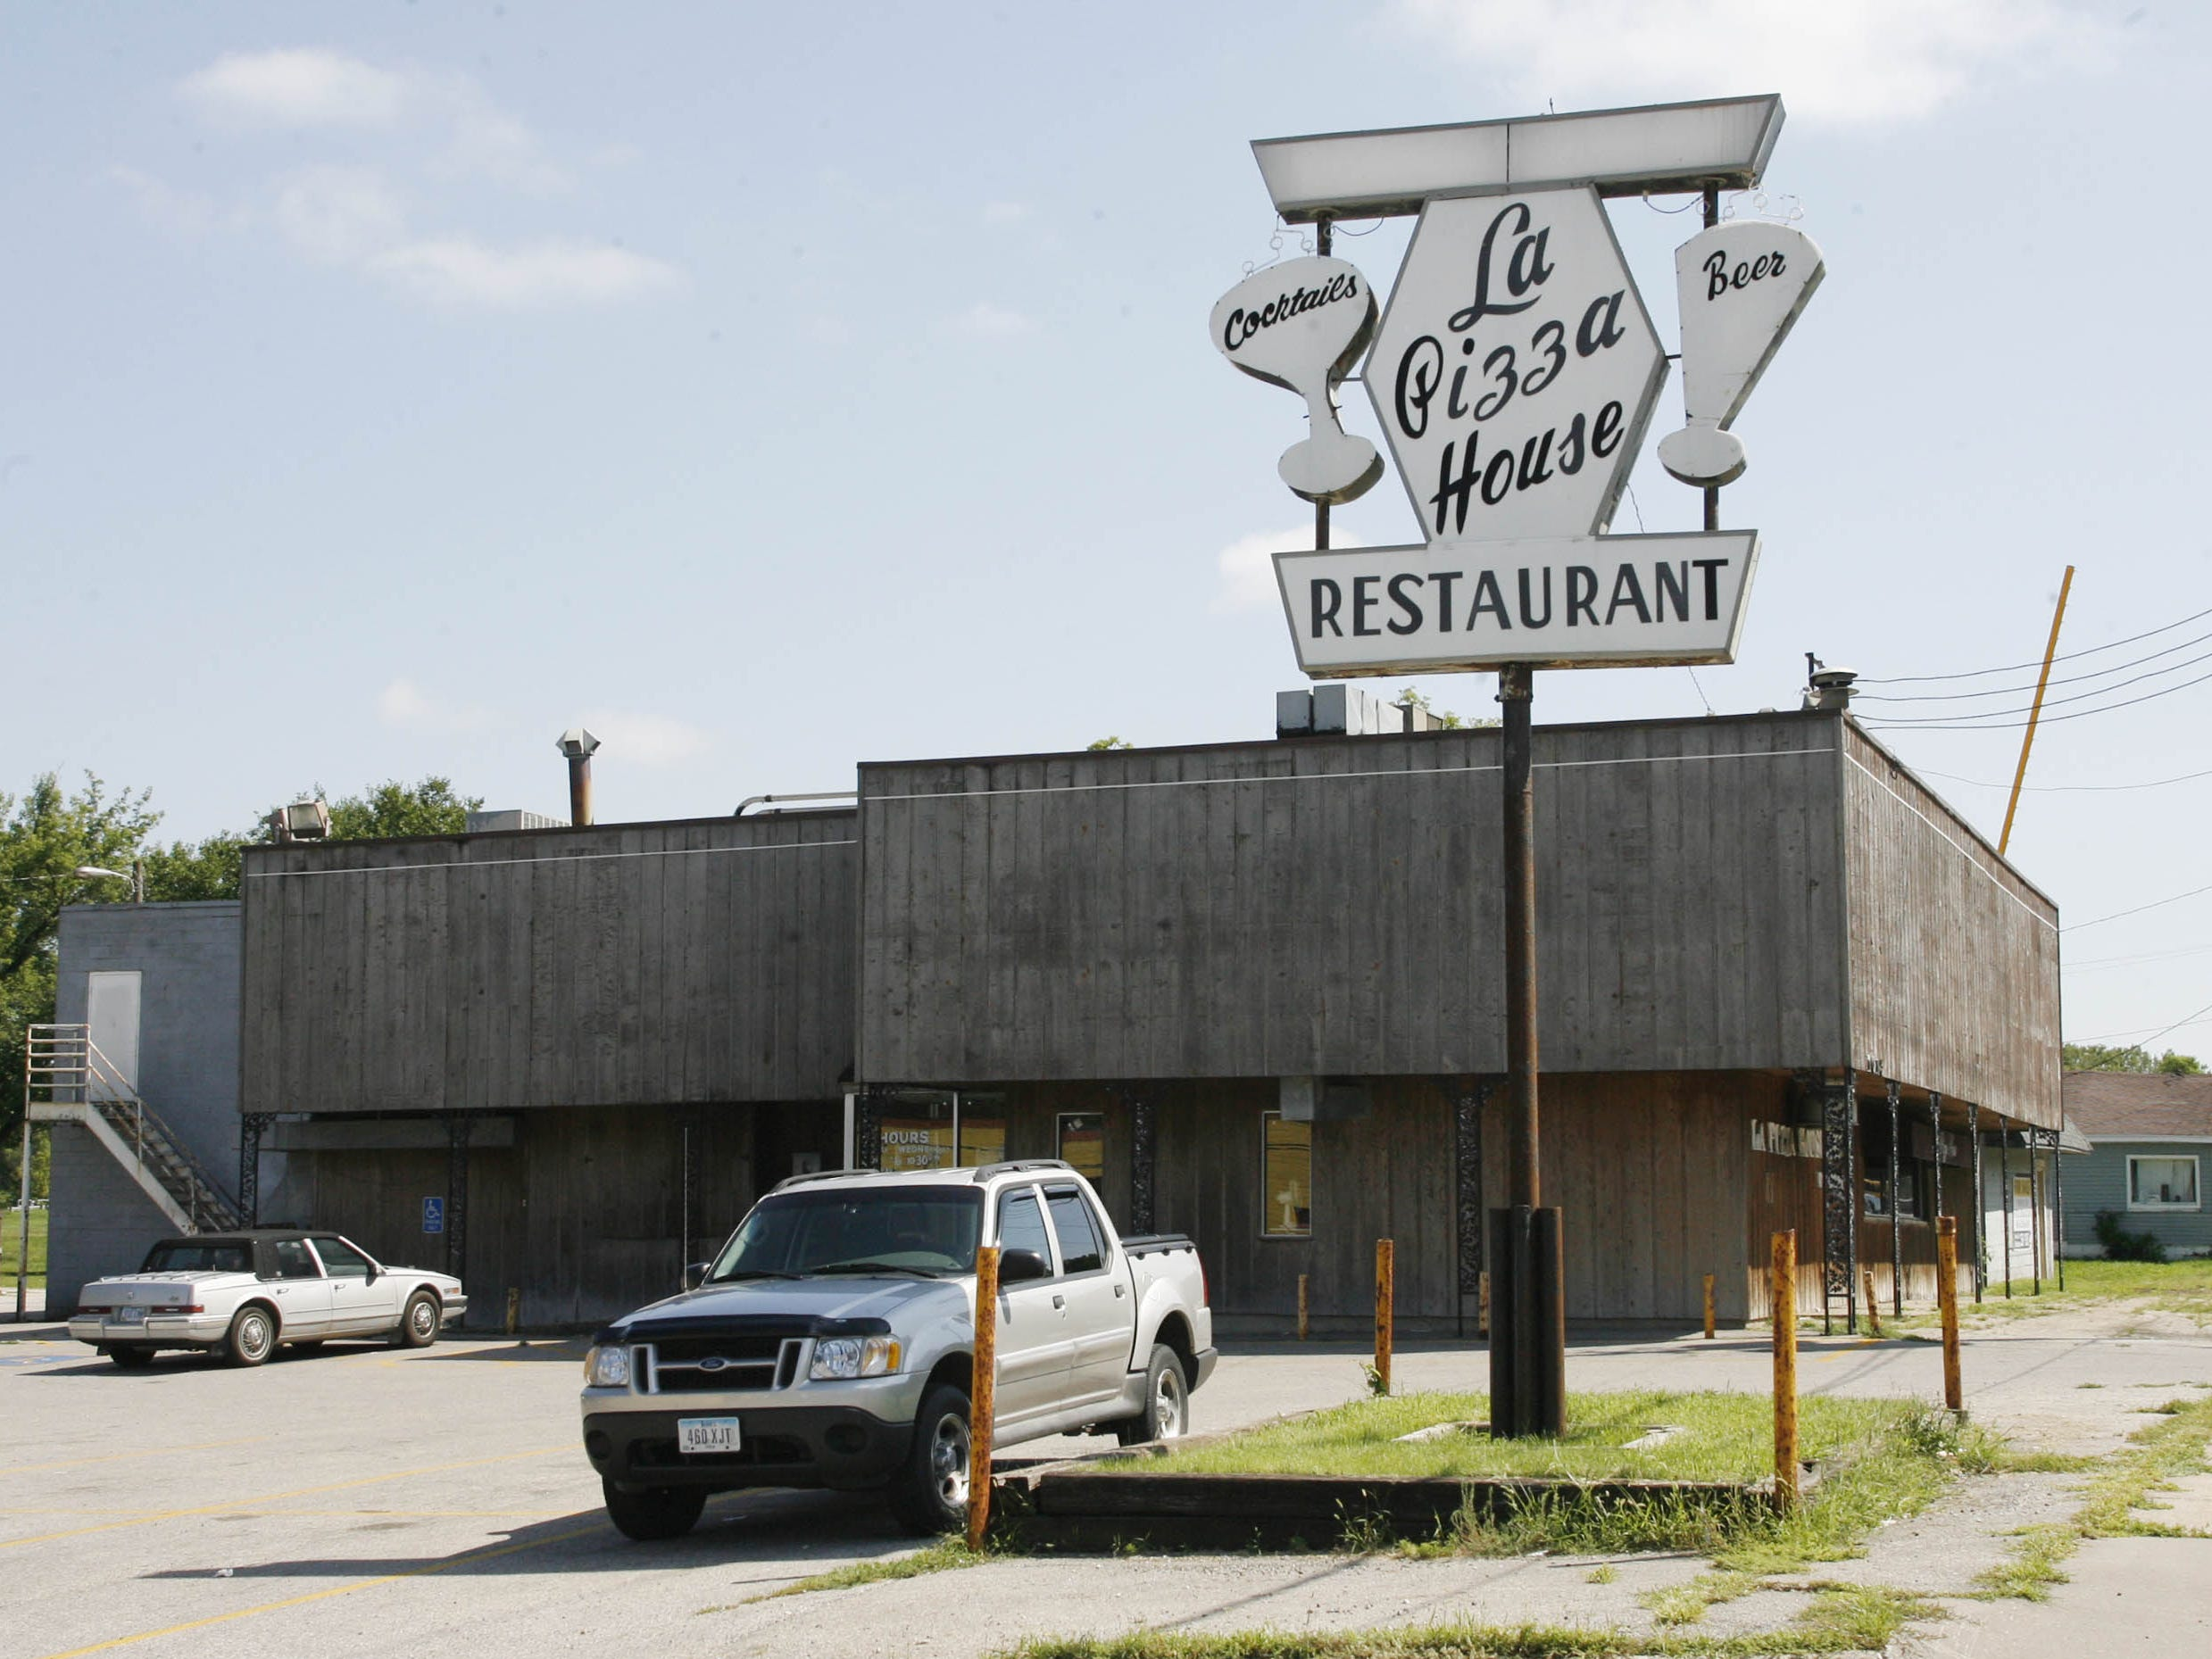 Thomas Polito bought back the restaurant on Des Moines' south side in 2011.